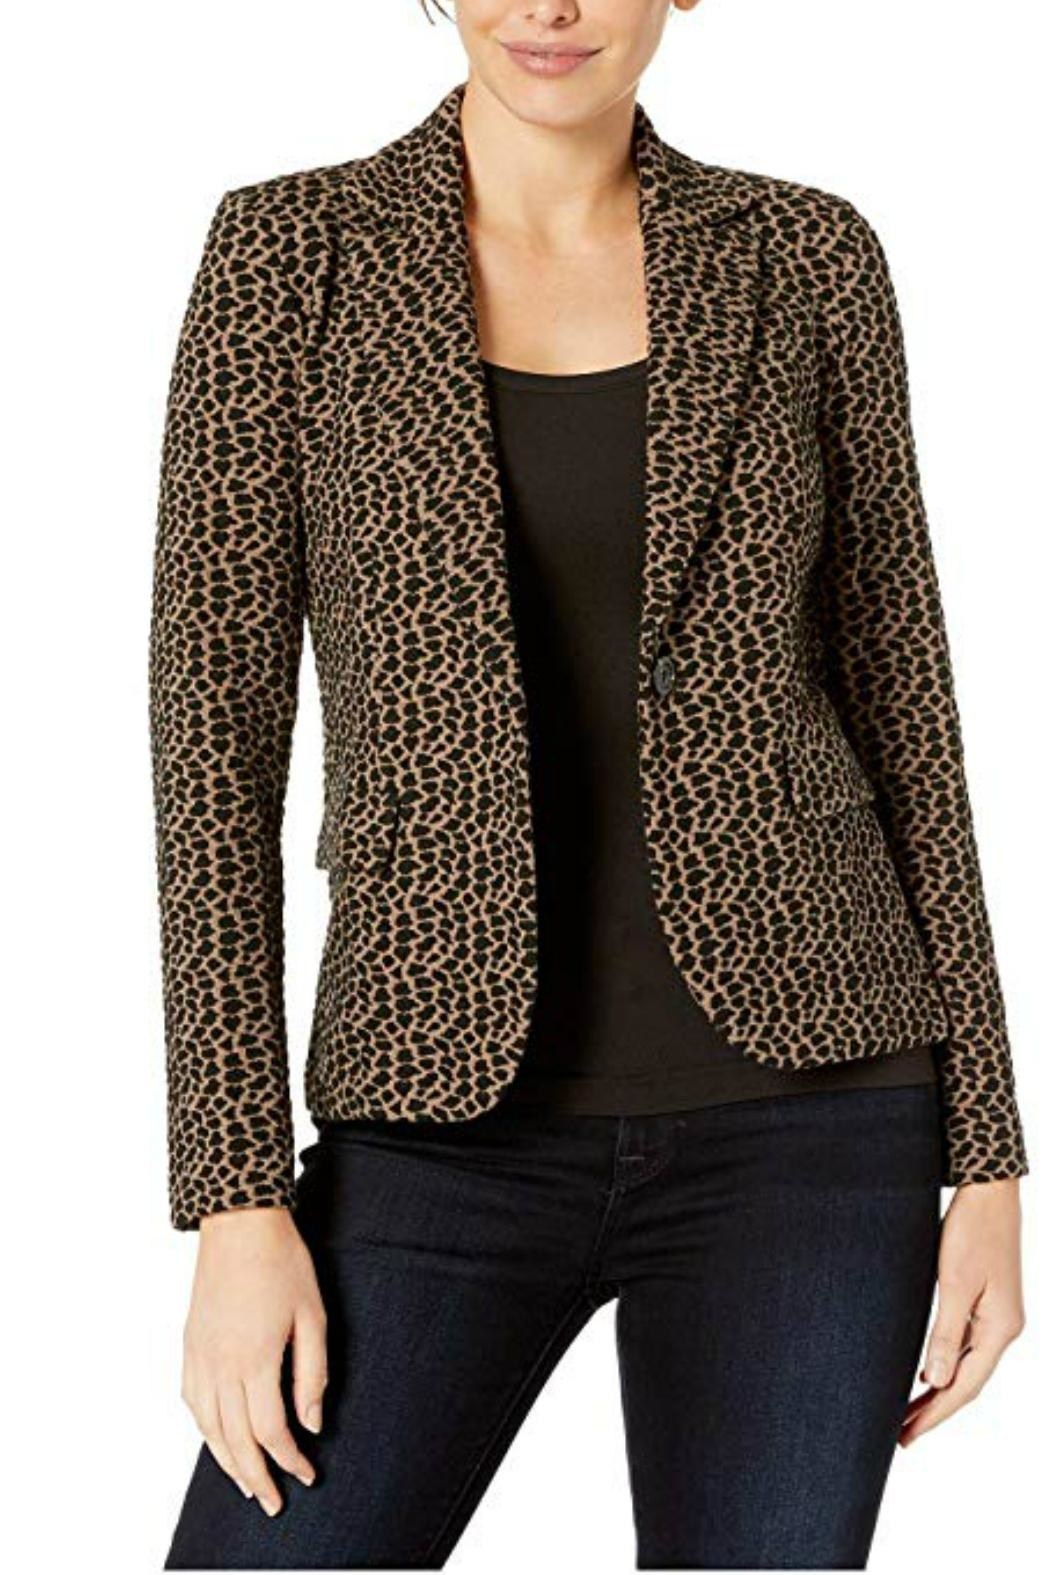 Elliott Lauren Animal Print Jacket - Front Full Image